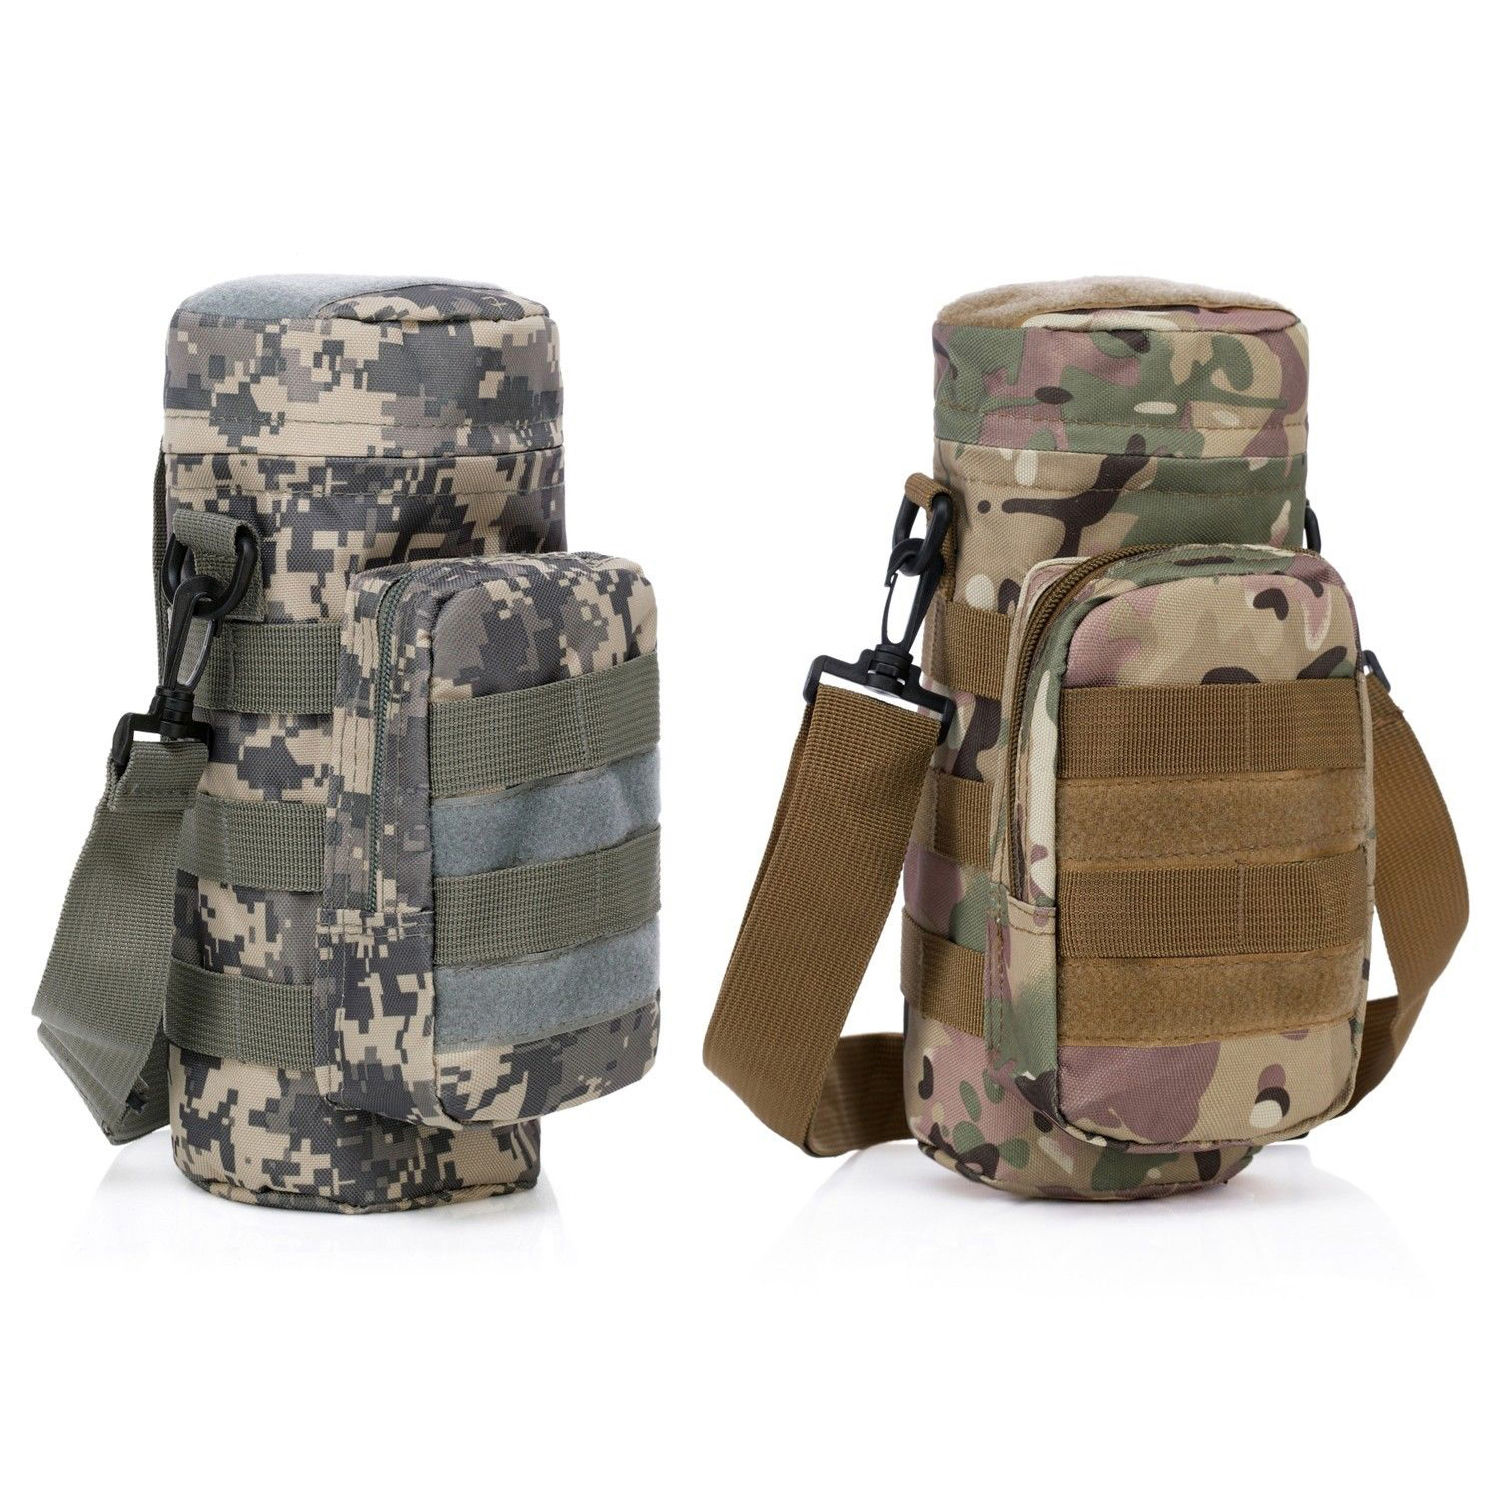 Outdoor Militray MolleZipper Water Bottle Pouch Bag Carrier Hiking Q3C7